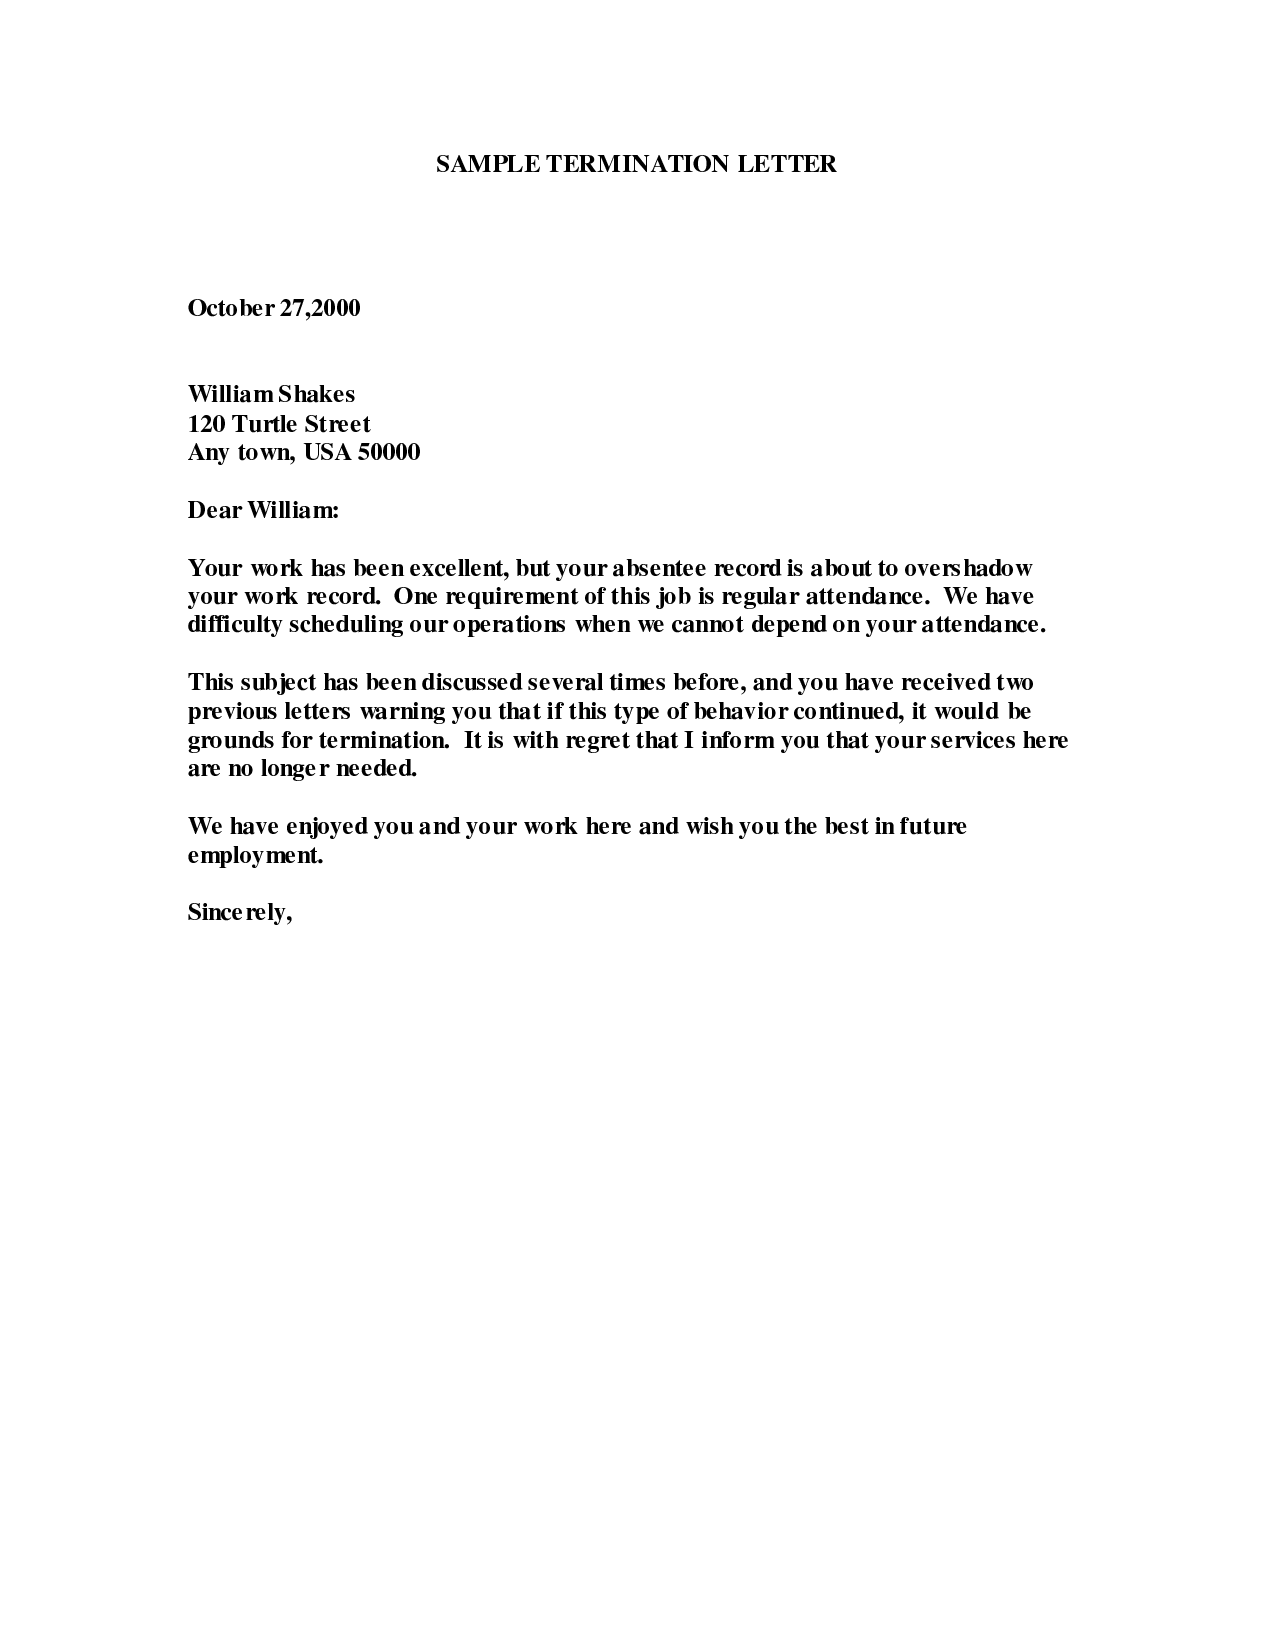 Sample of employee termination letter google search a few sample of employee termination letter google search spiritdancerdesigns